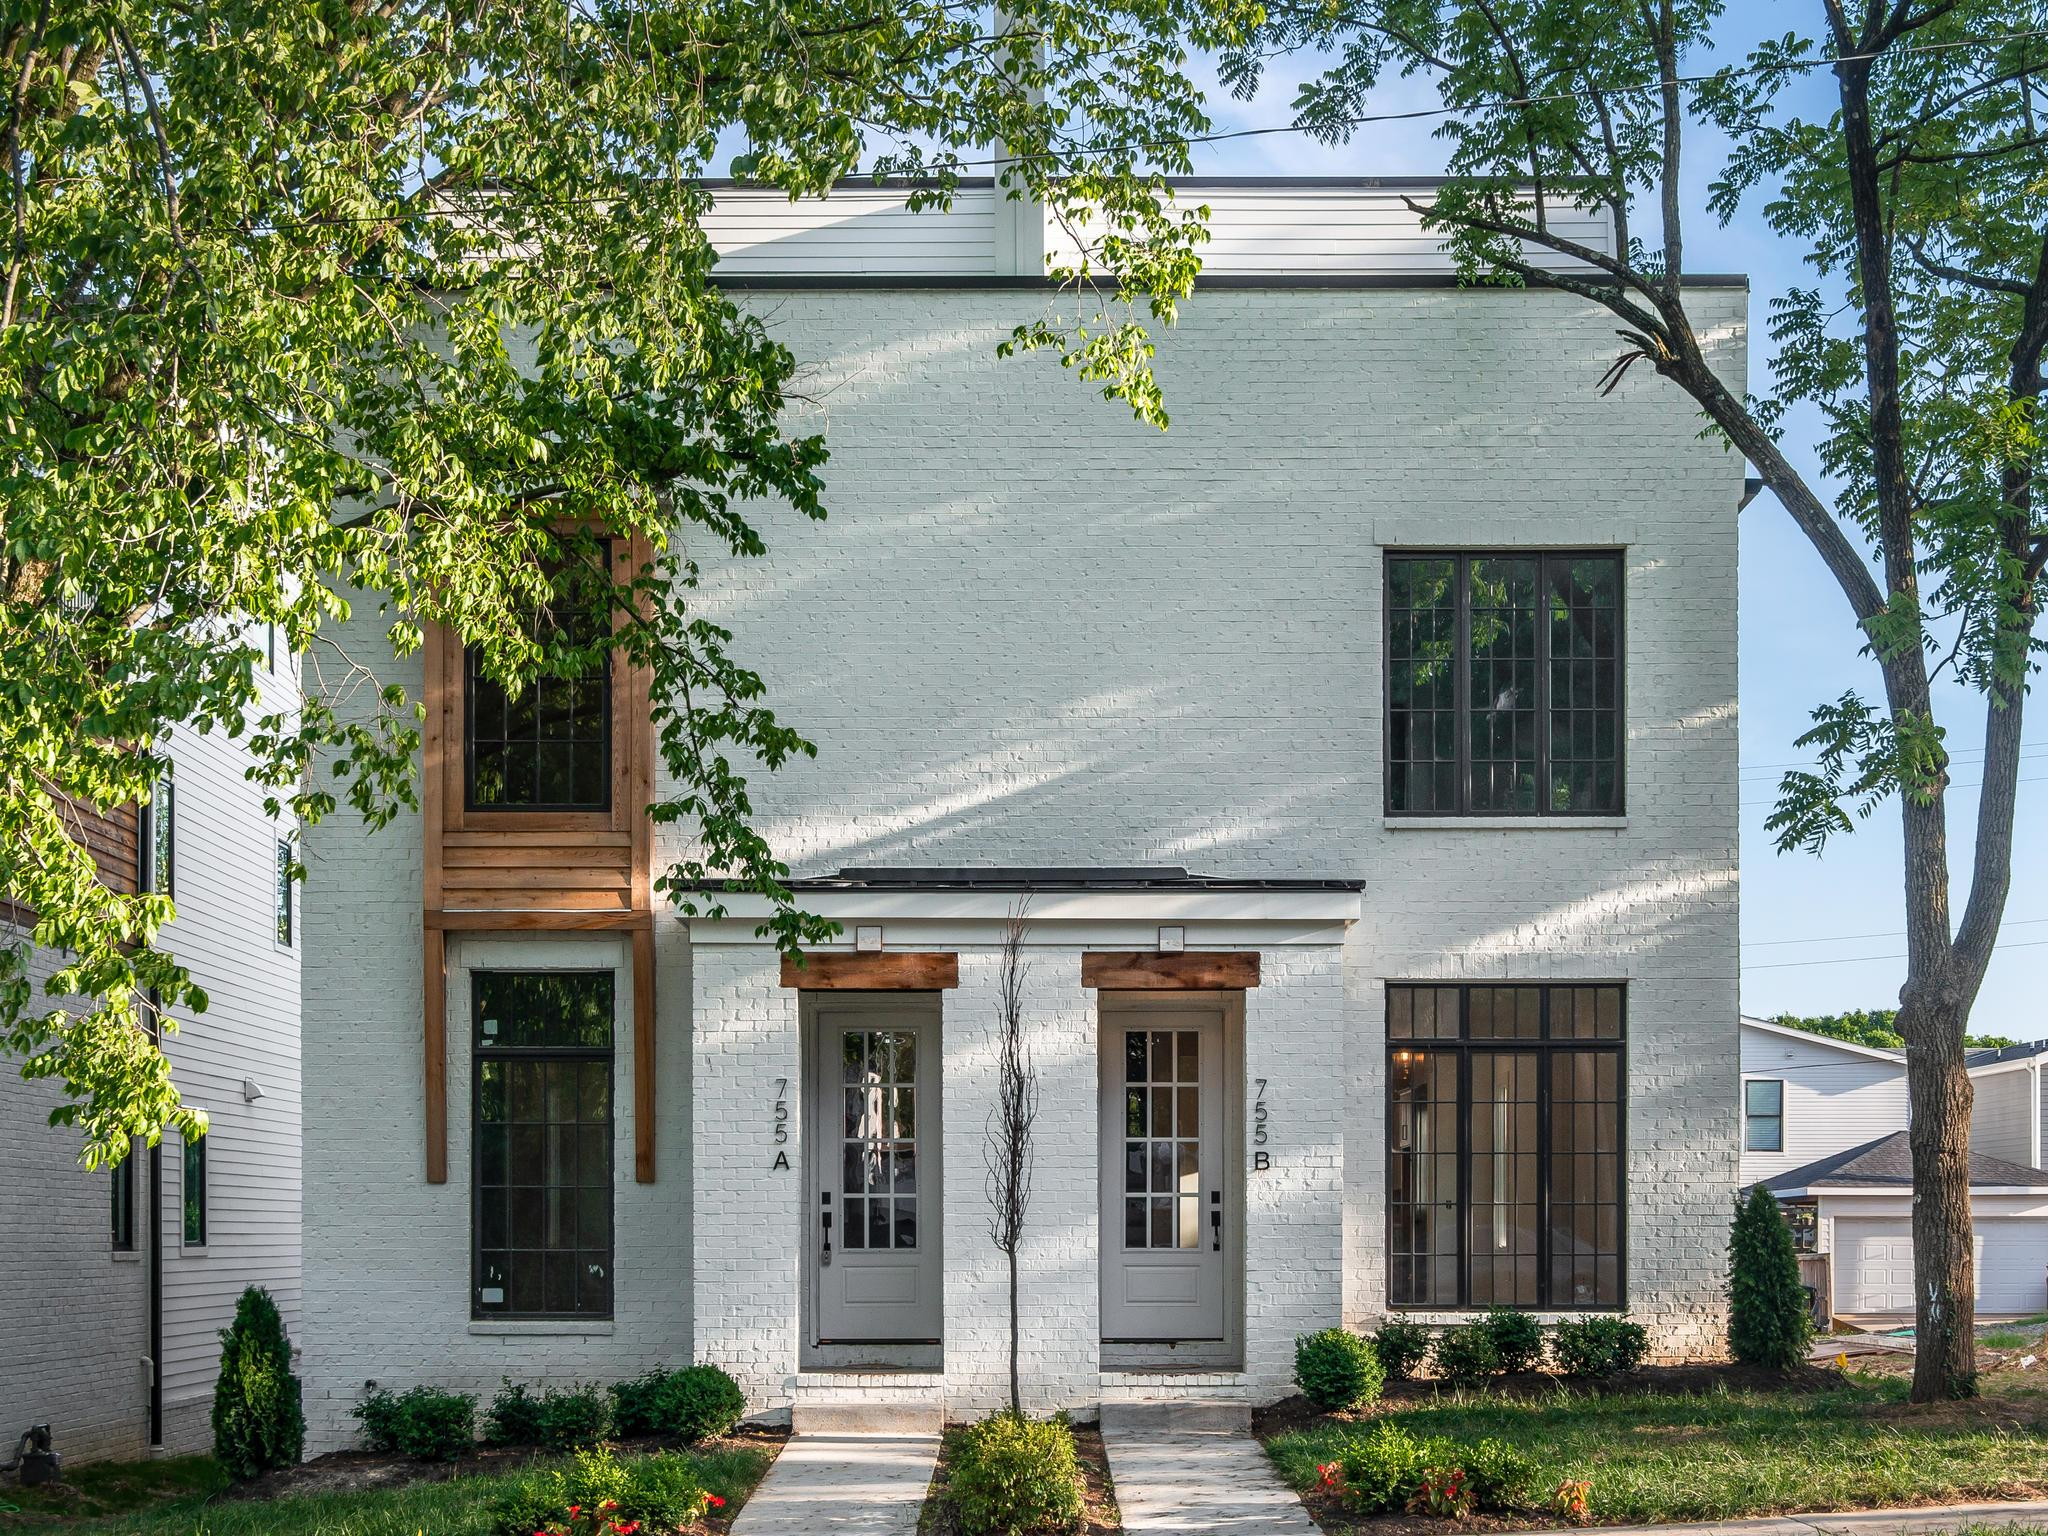 755B Lynwood Ave, Nashville - Midtown in Davidson County County, TN 37203 Home for Sale